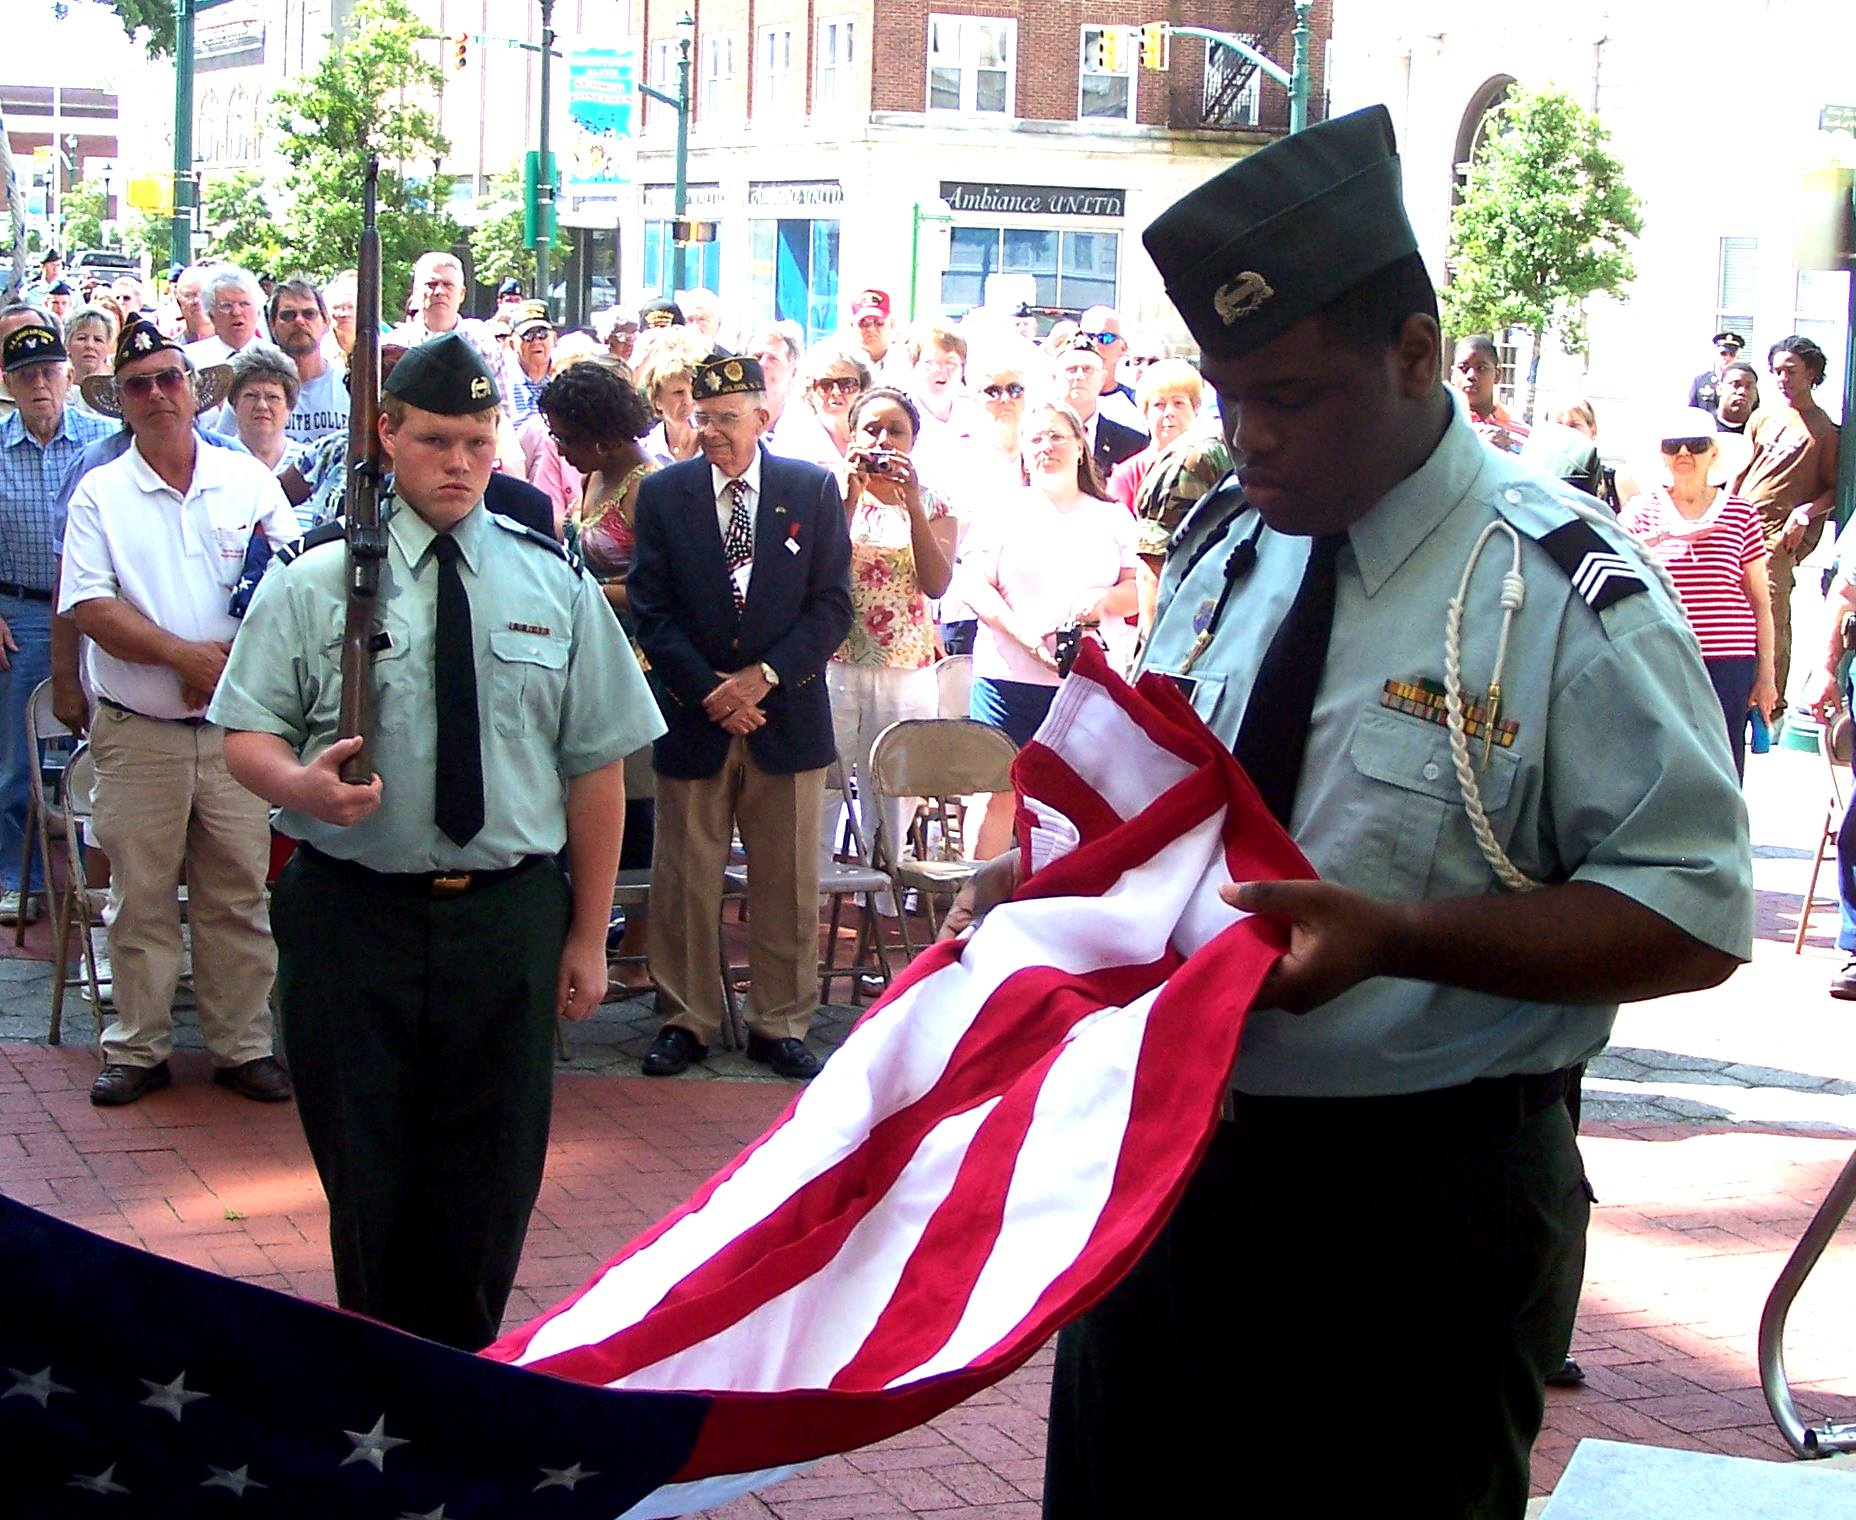 City remembers veterans' sacrifice on Memorial Day